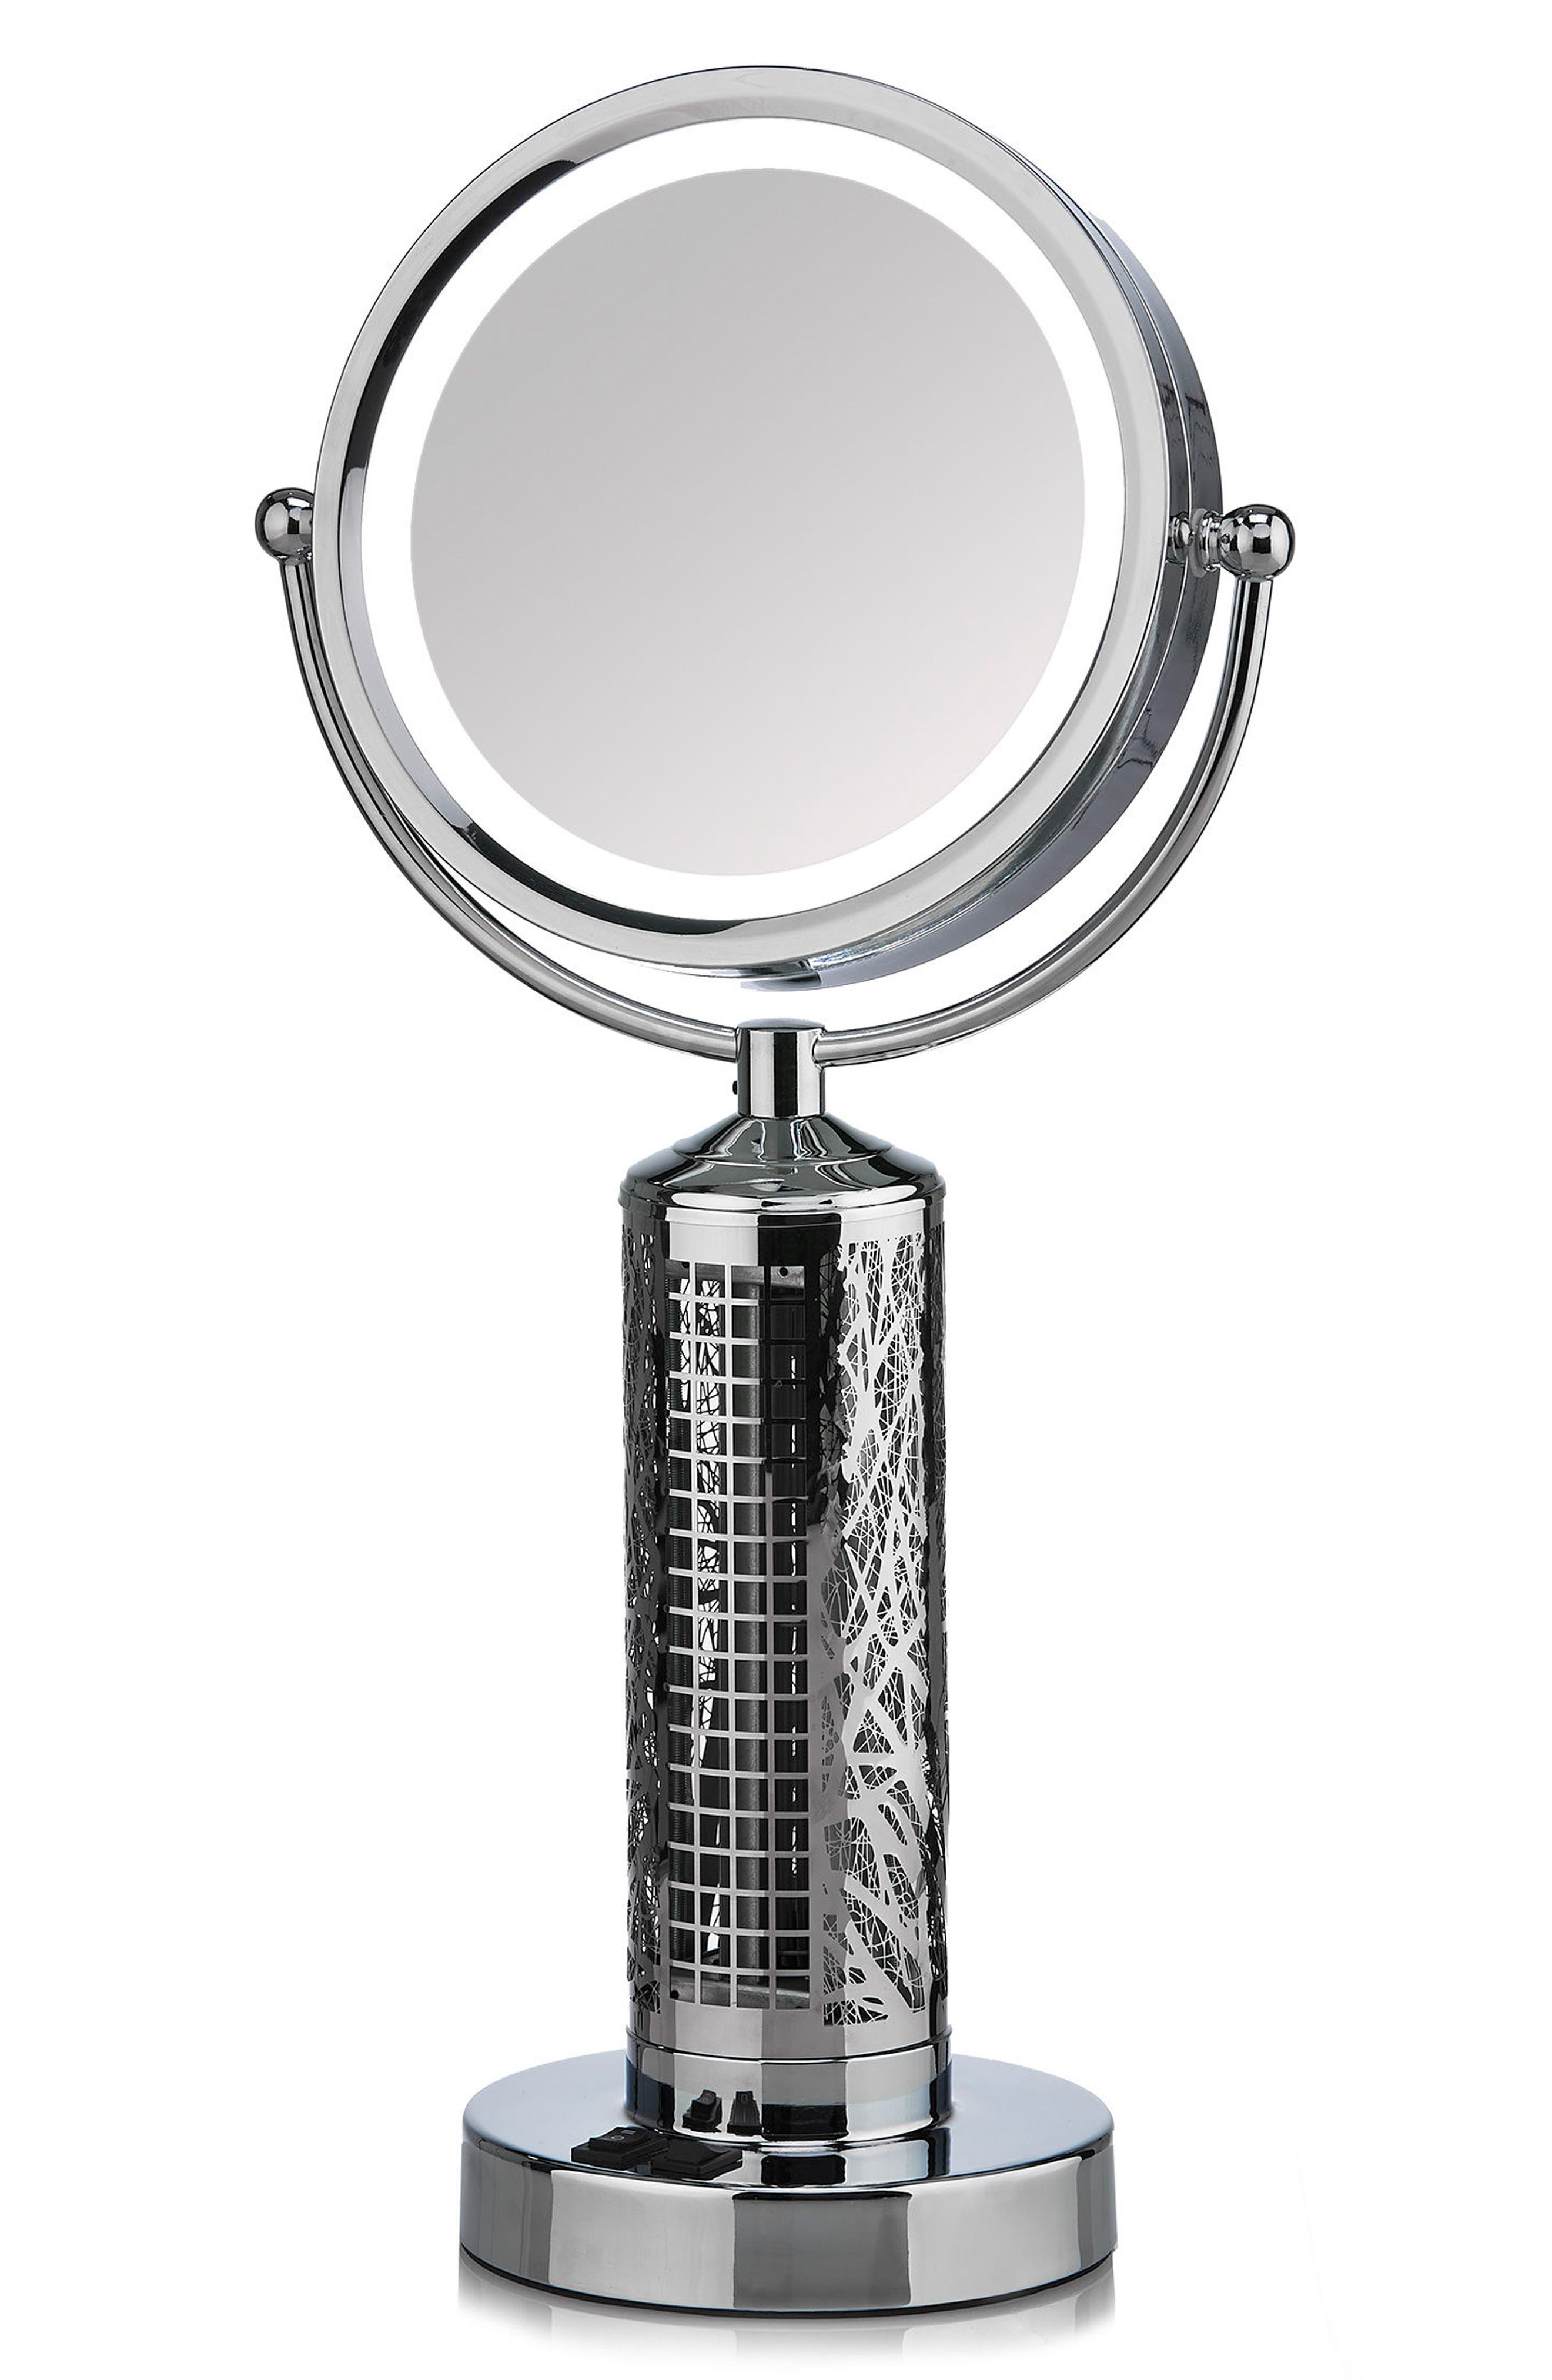 Main Image - DecoBREEZE Fanity Makeup Mirror with Electric Fan